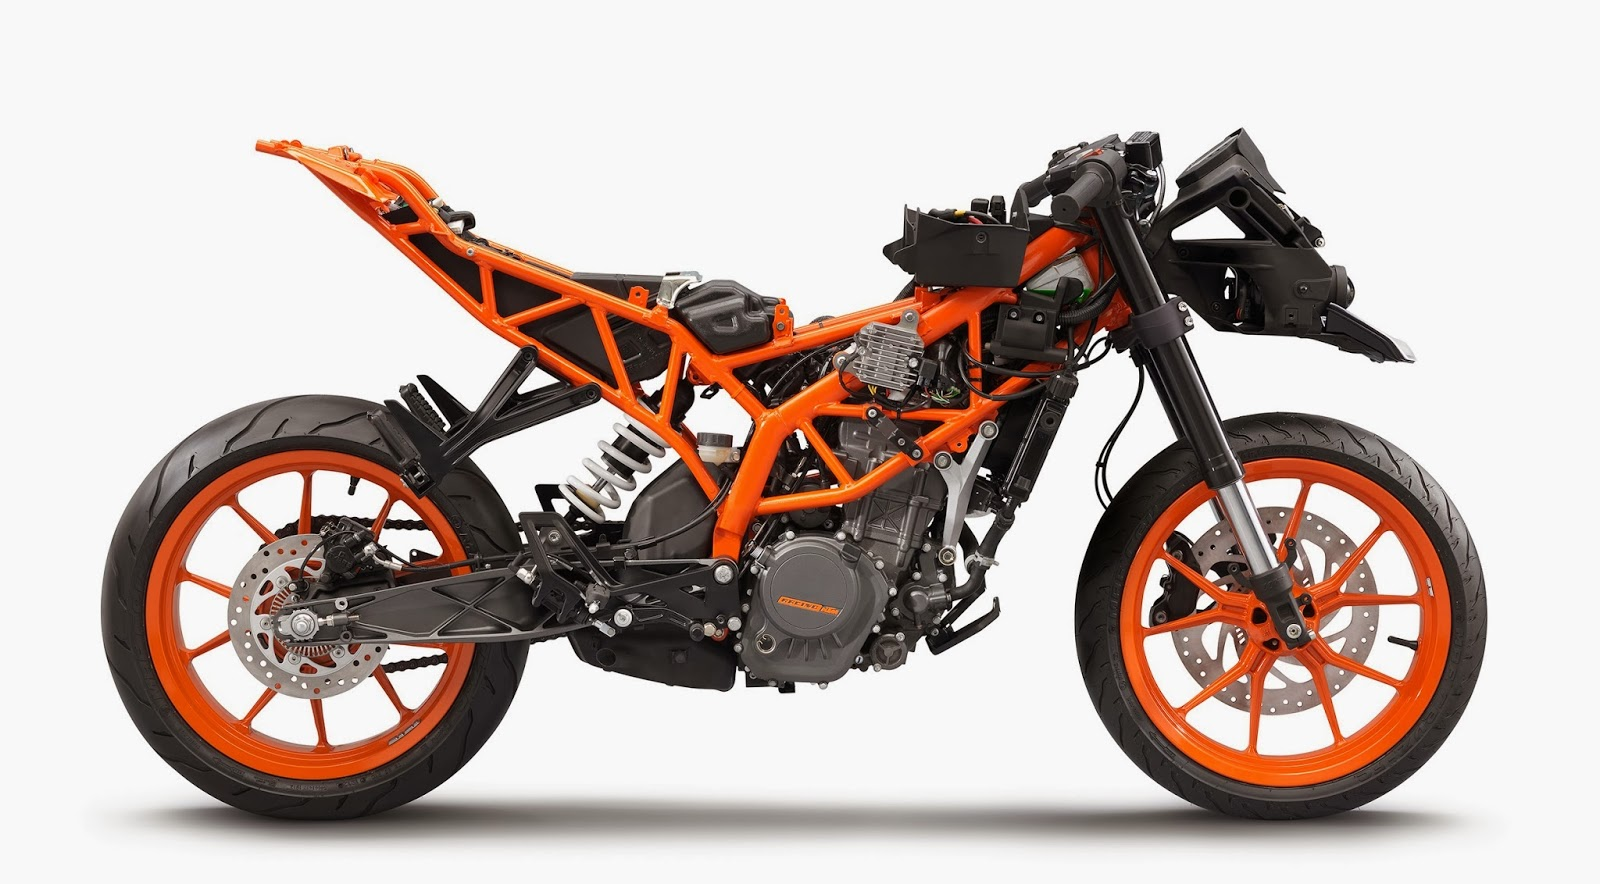 KTM-Duke-RC-200-India-Stripped - BharathAutos - Automobile News Updates